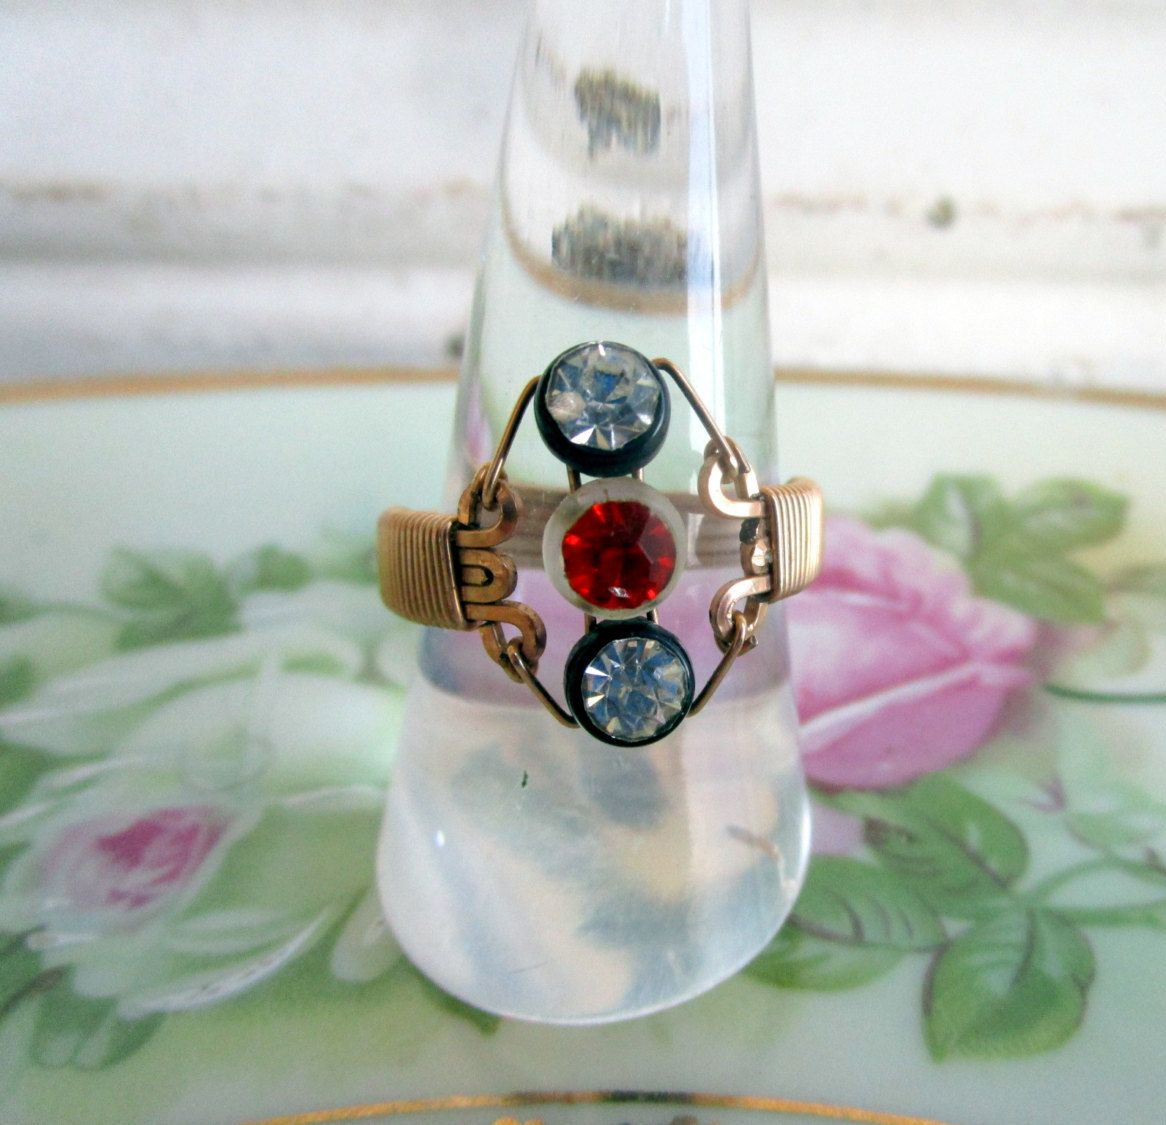 Vintage Art Deco Wire Ring with glass rhinestones by Holliezhobbiez on Etsy